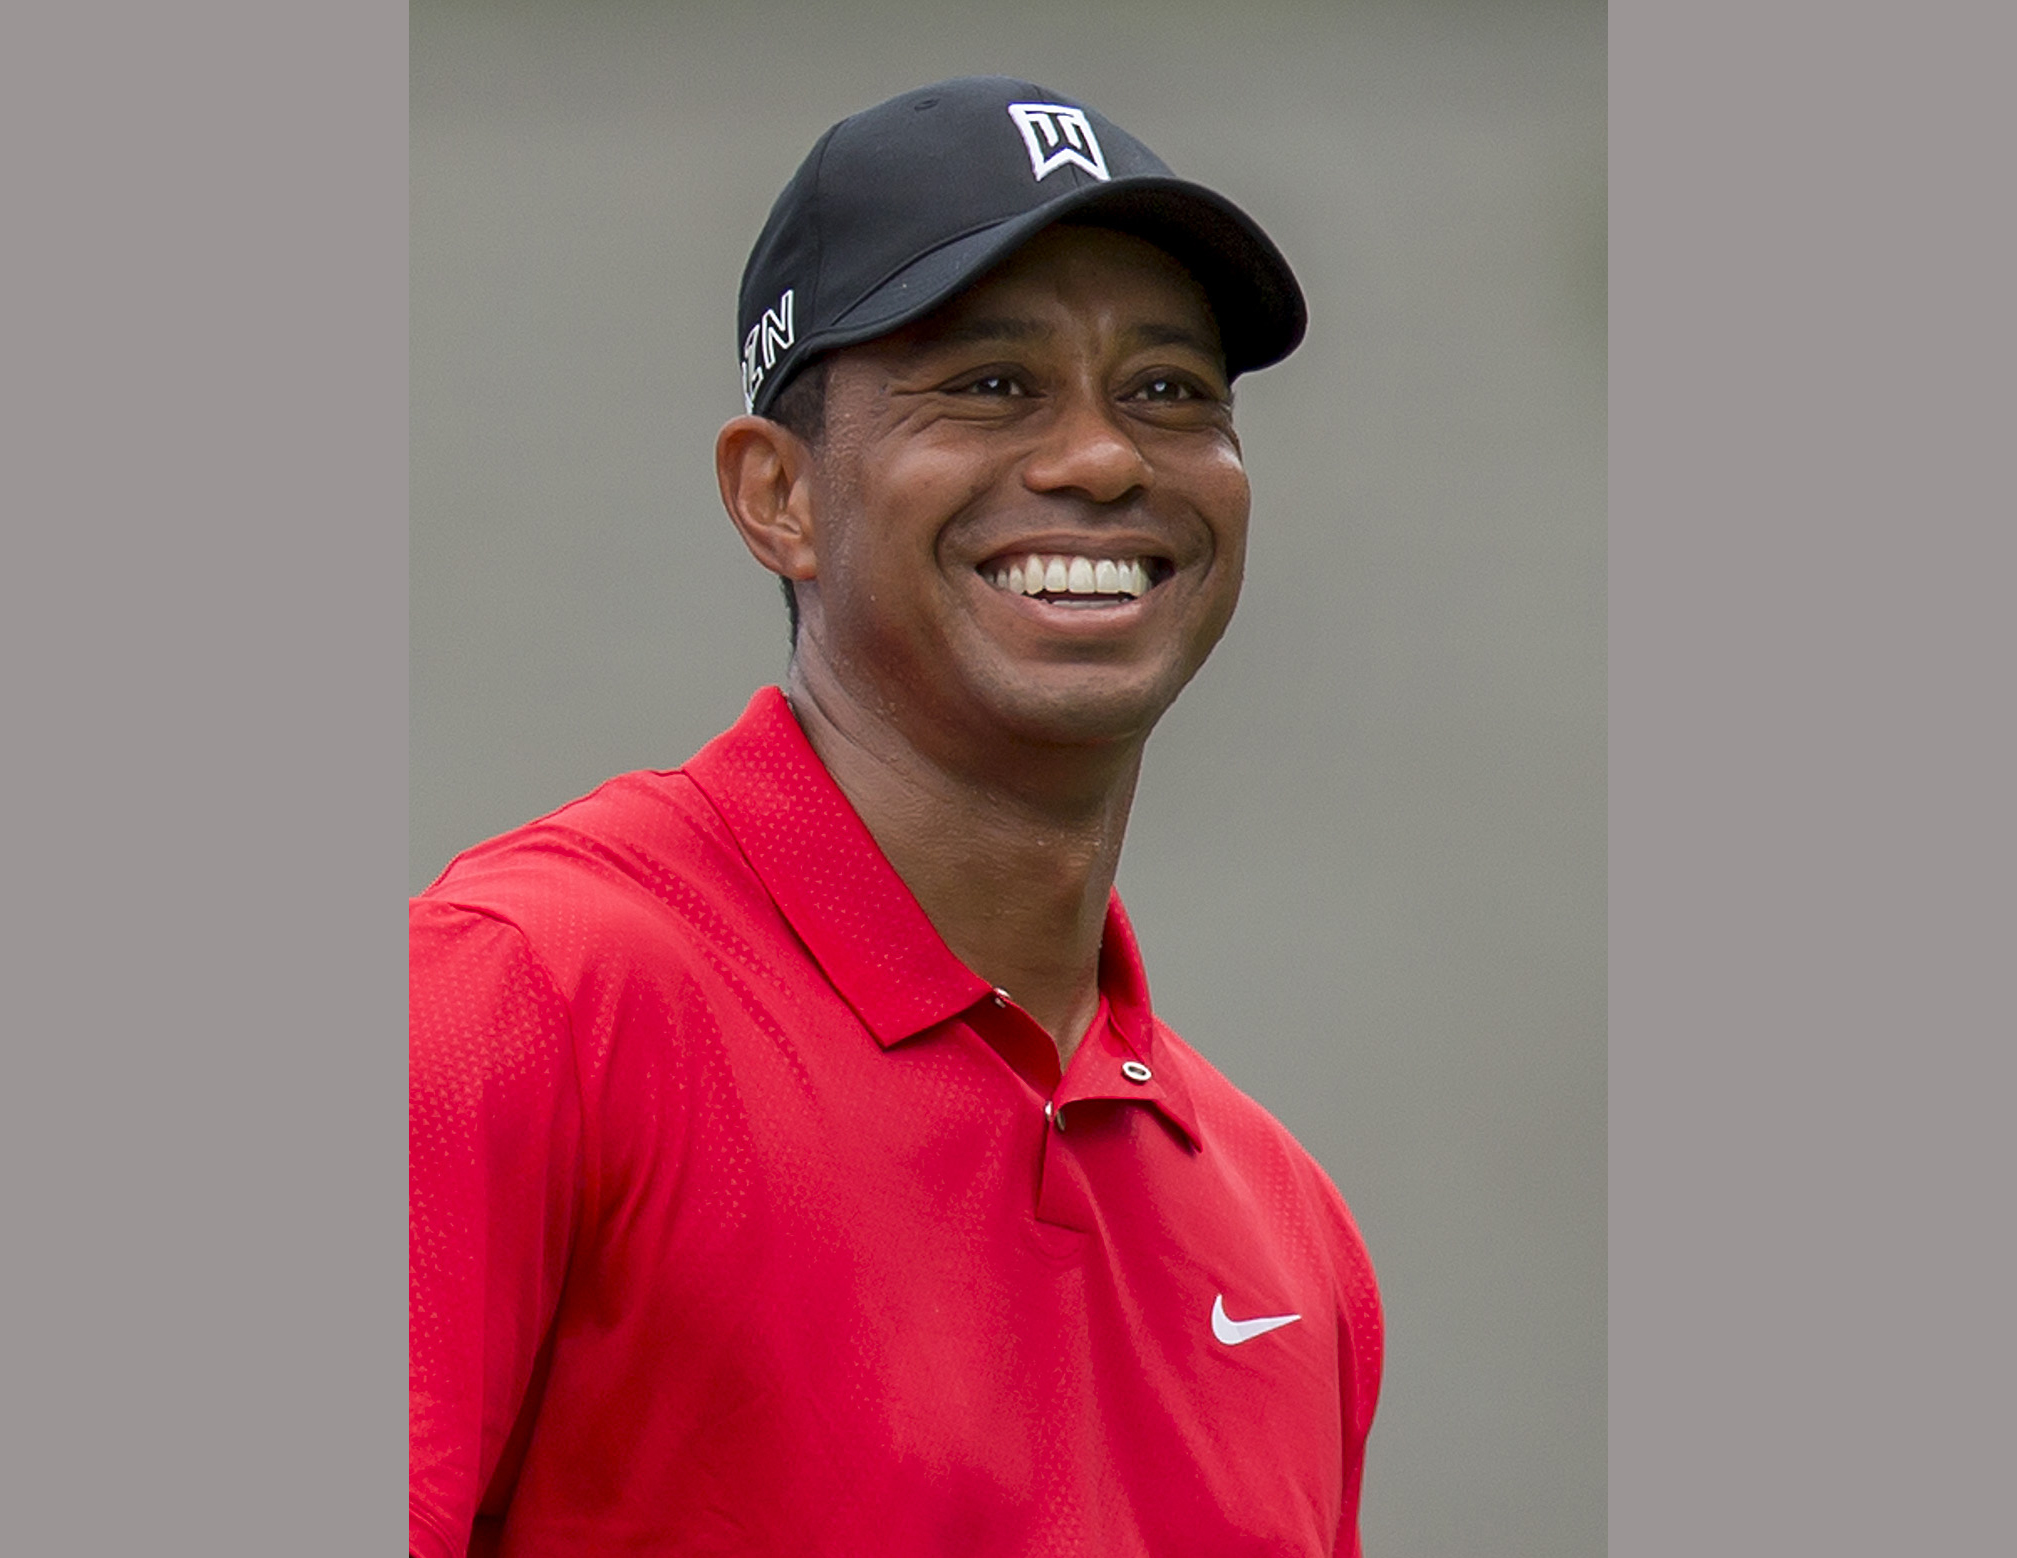 FILE - In this Aug. 23, 2015 file photo, Tiger Woods smiles at the third tee during the final round of the Wyndham Championship golf tournament in Greensboro, N.C. Woods is writing his first book since 2001 that is due out next spring. The book does not h